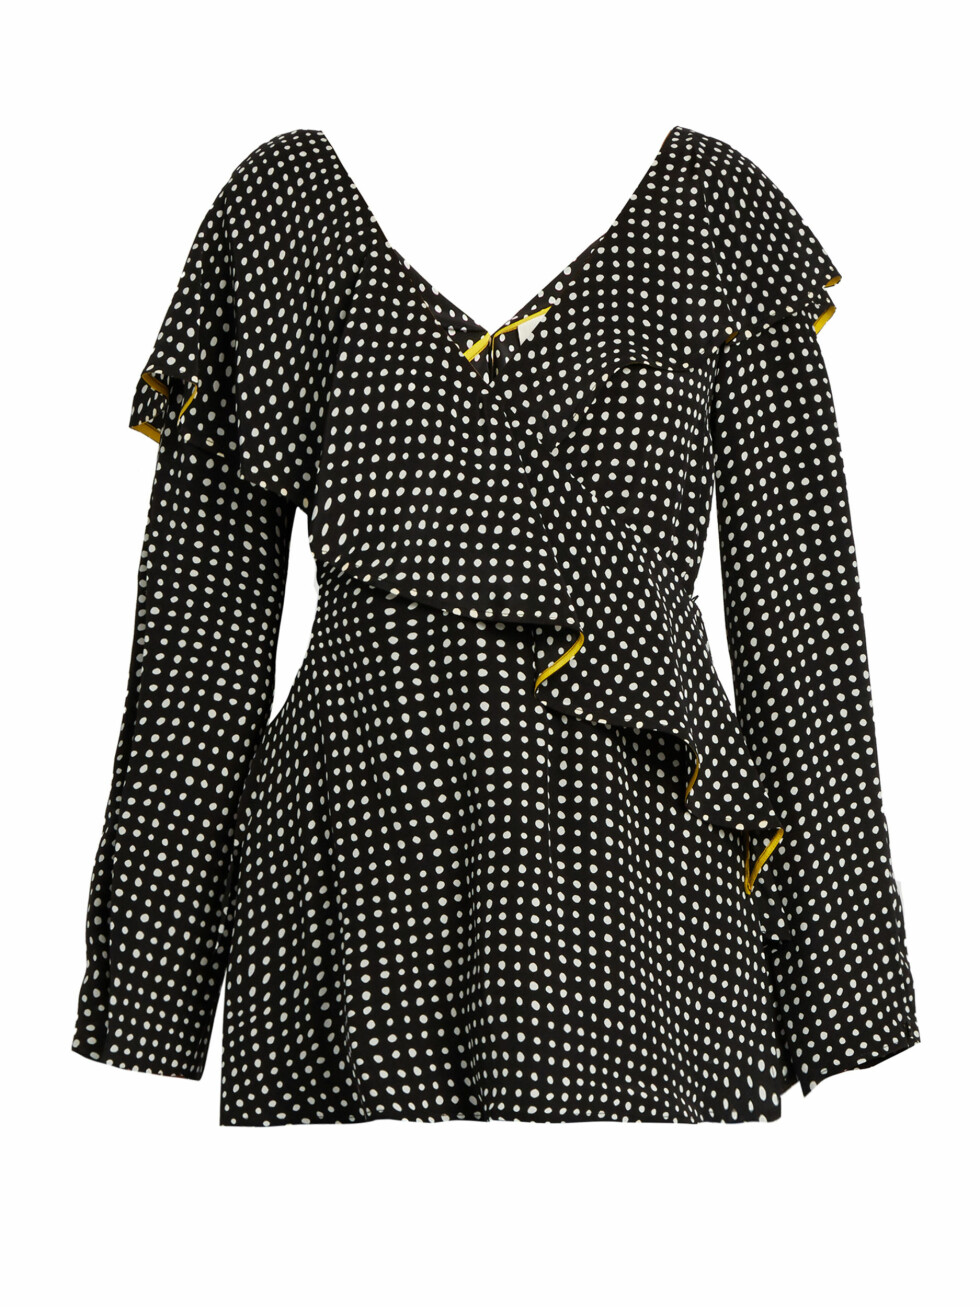 Topp fra Diane von Furstenberg via Matchesfashion.com | kr 1260 | http://www.matchesfashion.com/intl/products/Diane-Von-Furstenberg-Fluted-lapel-polka-dot-print-wrap-silk-blouse-1098247